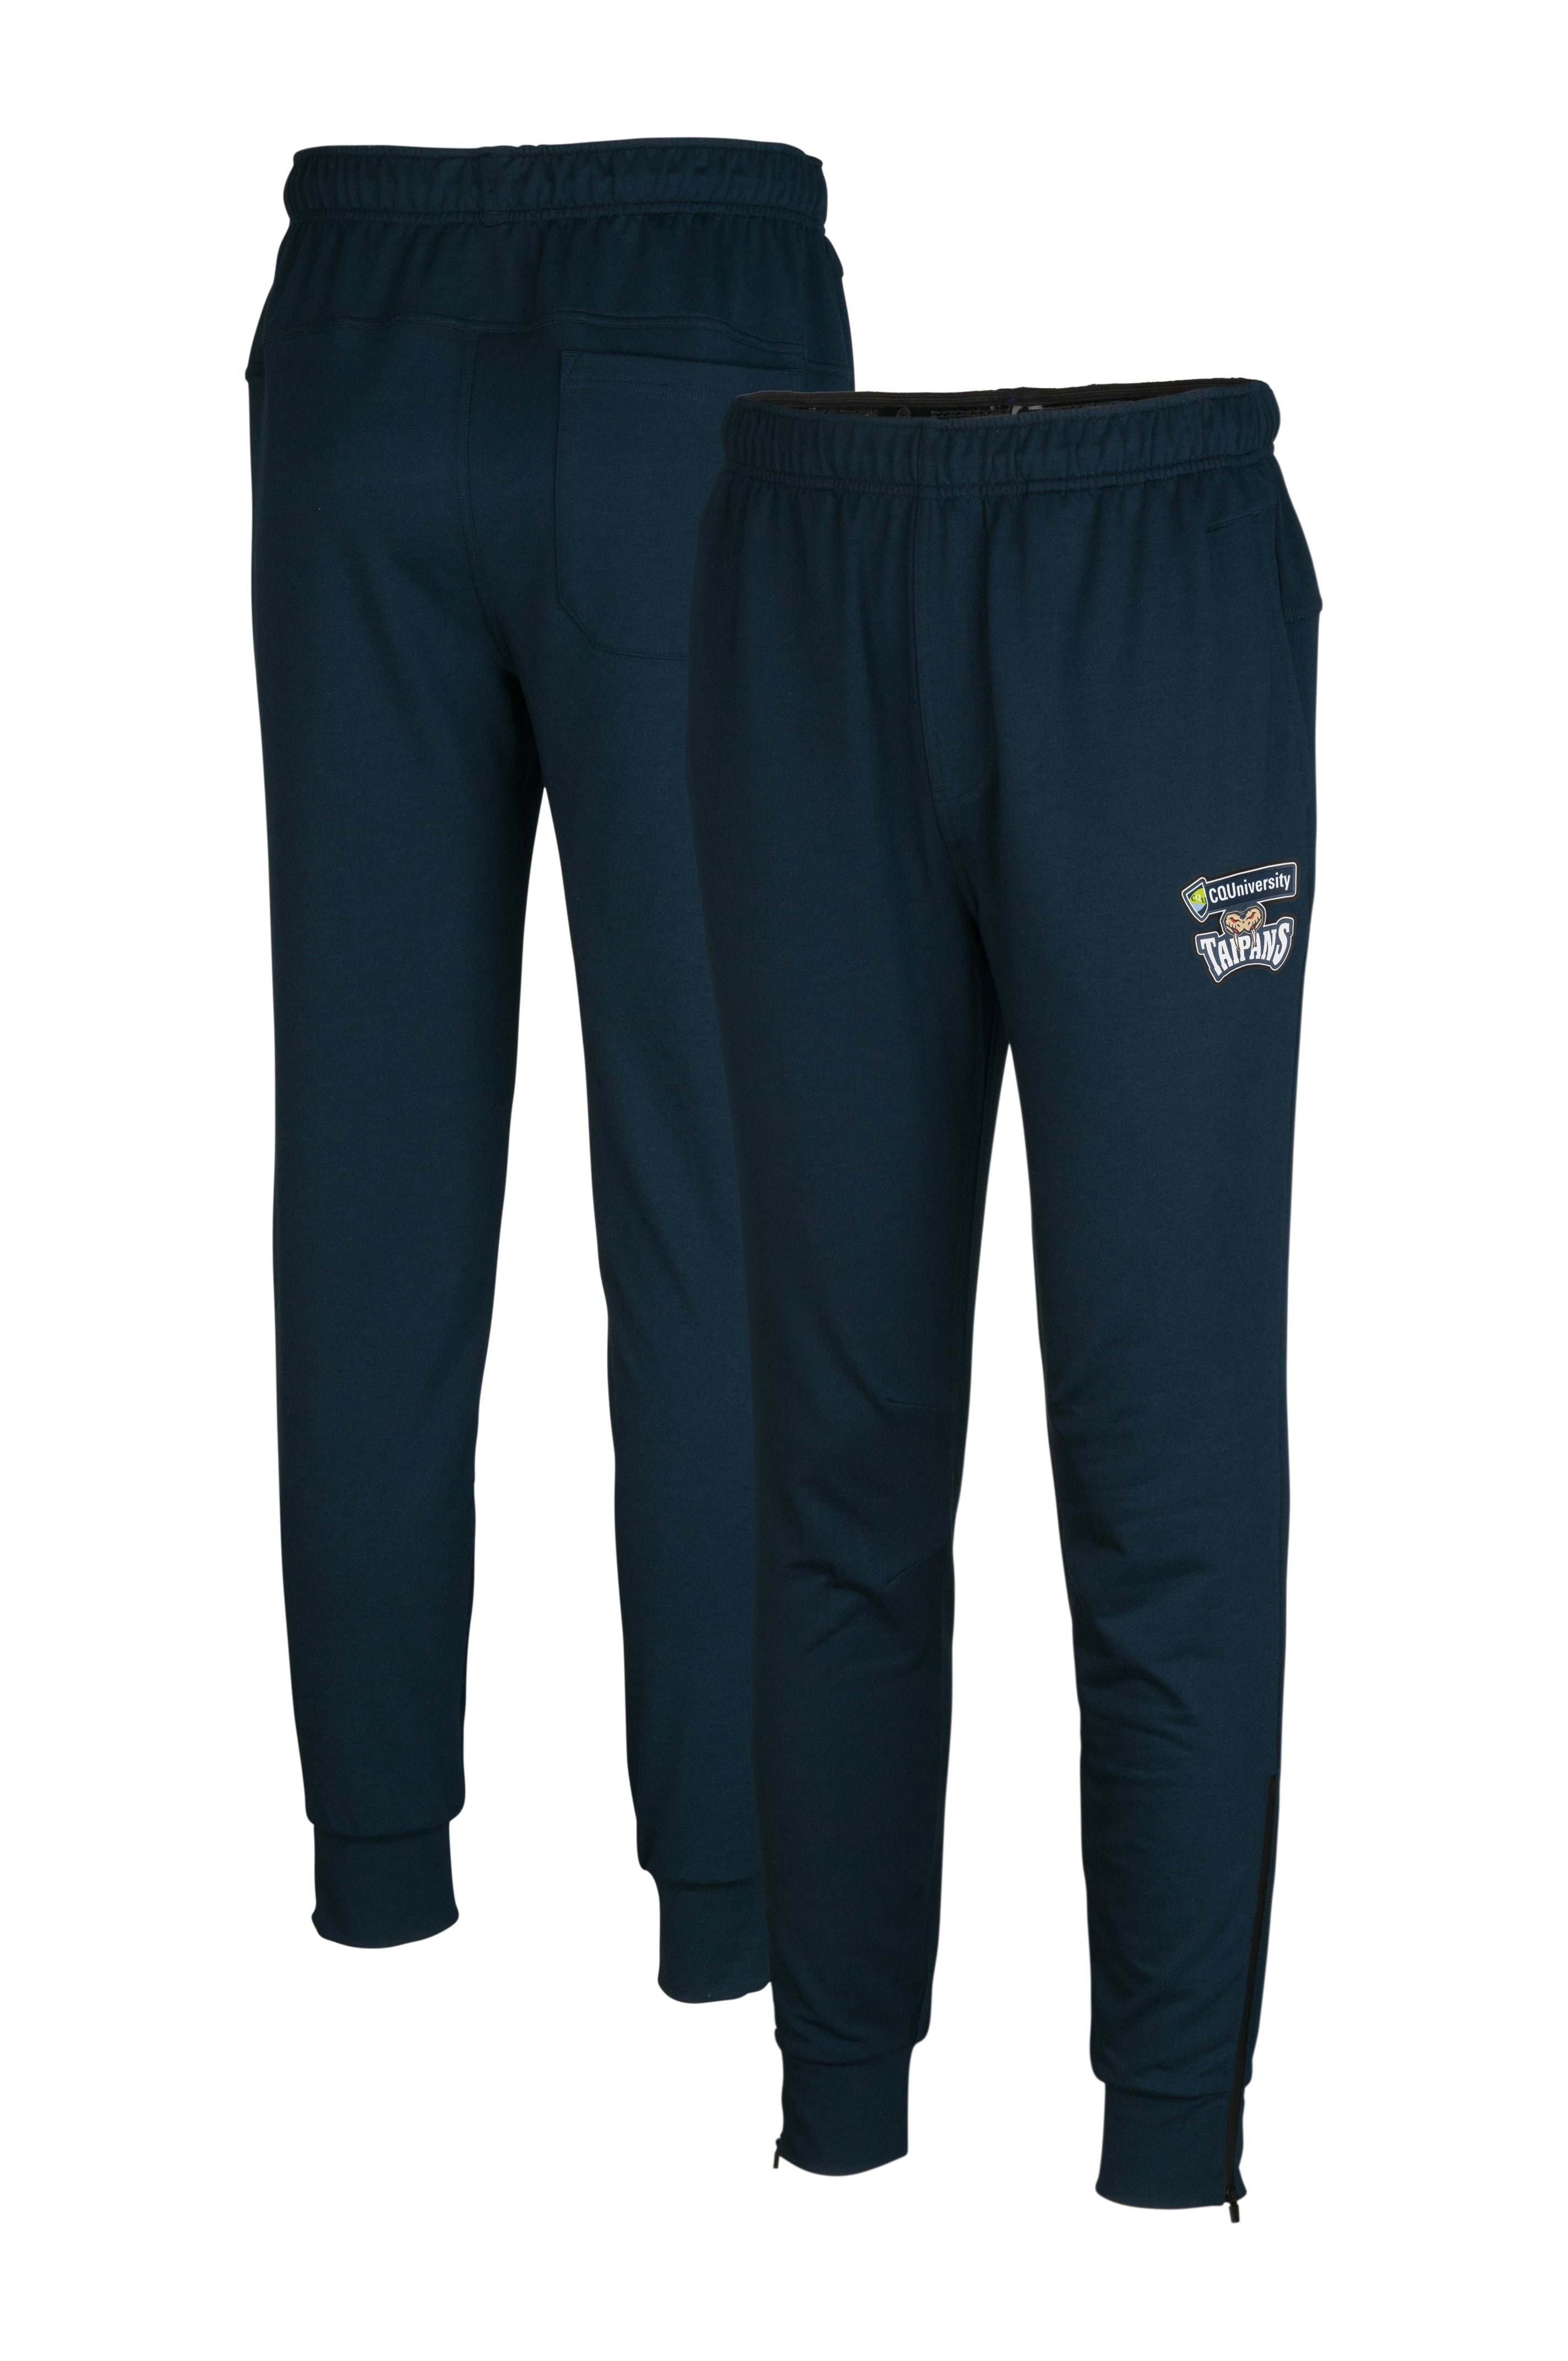 cairns-taipans-performance-trackpant - Front and Back Image